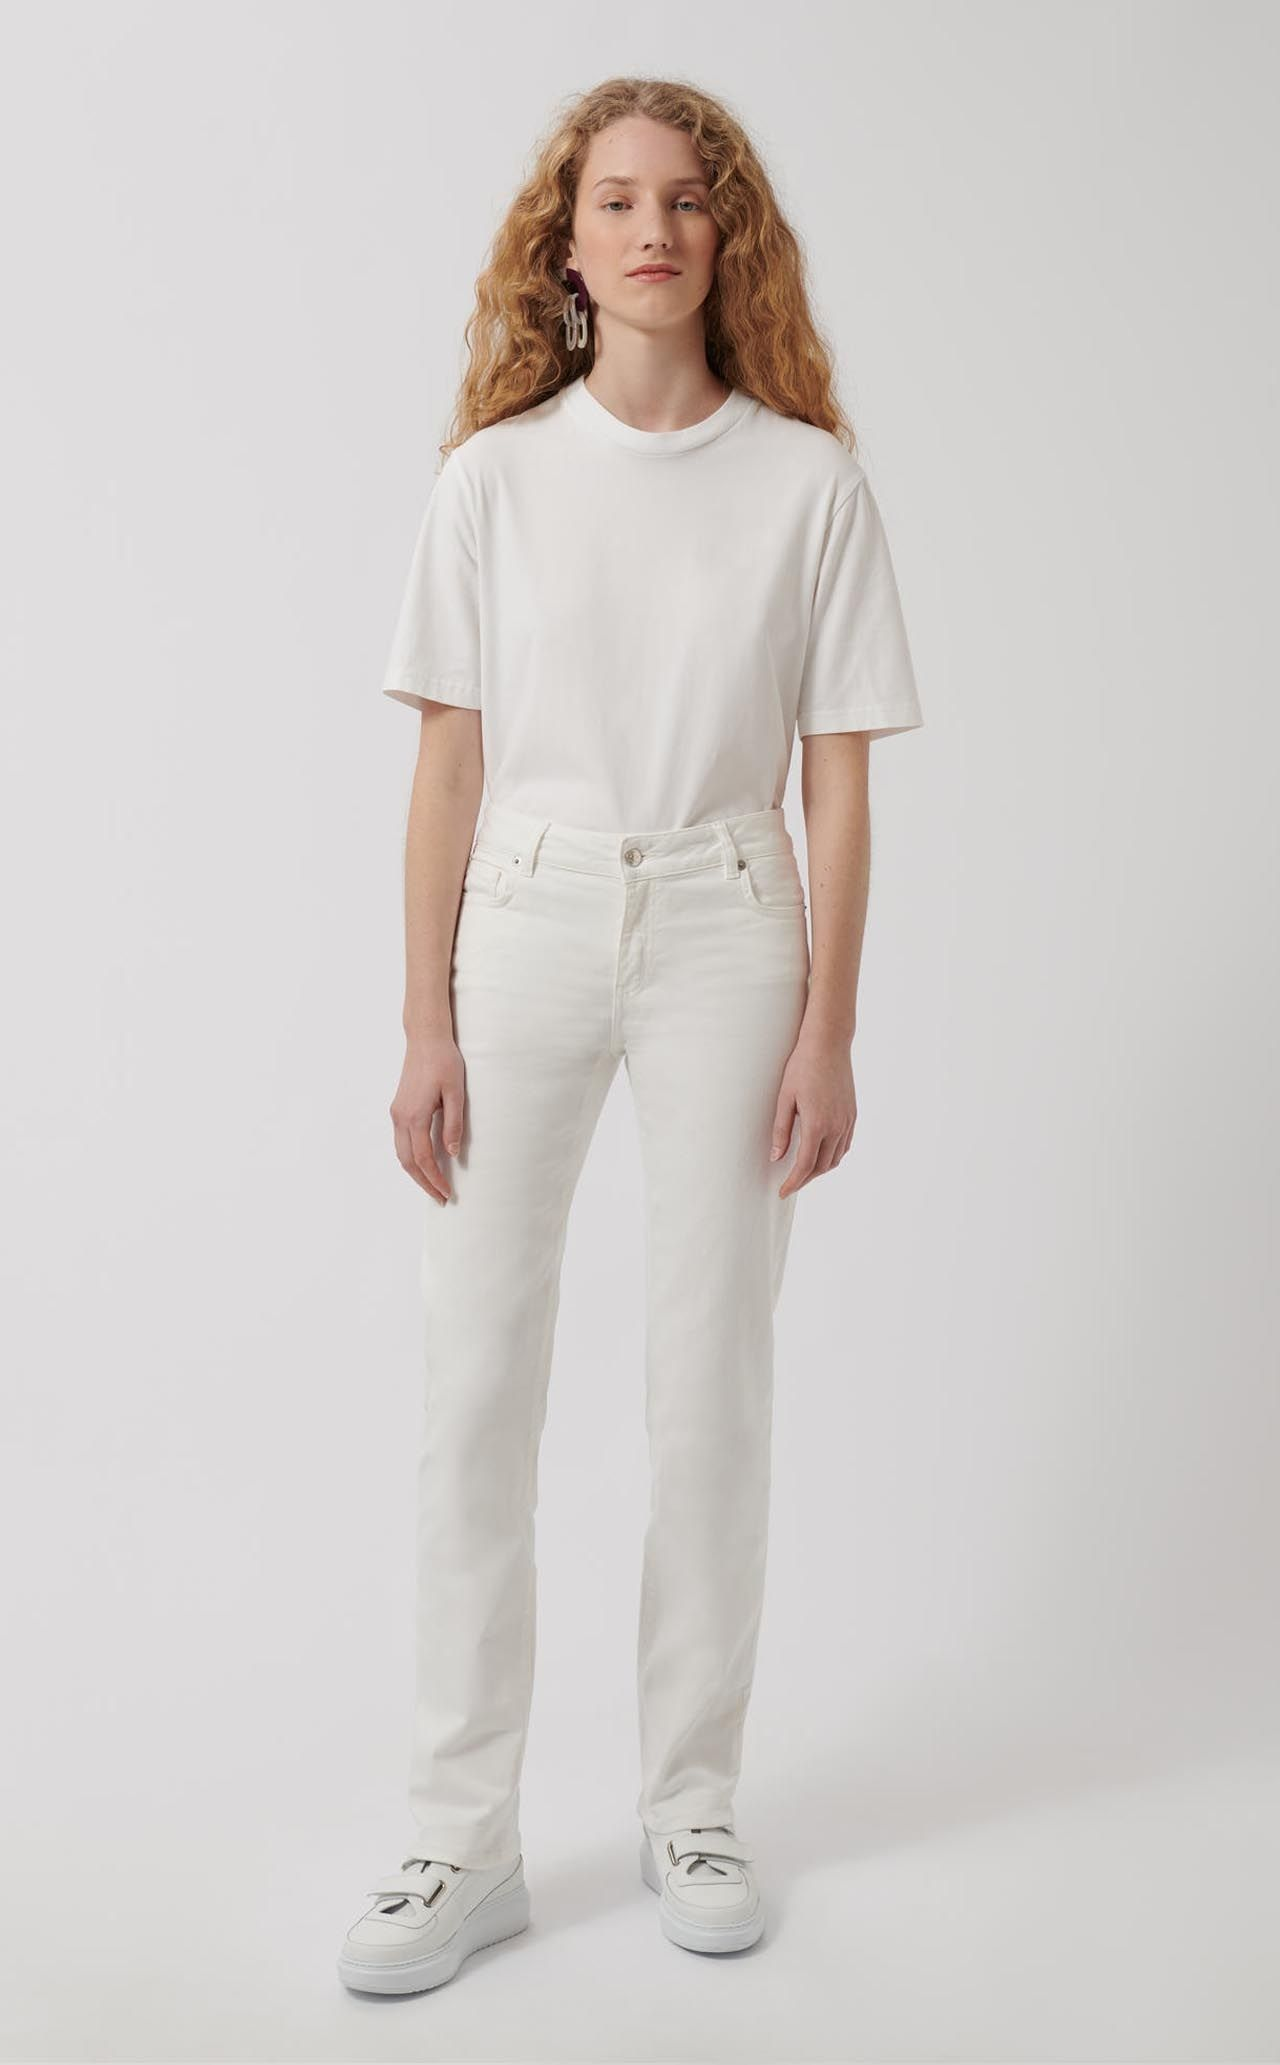 5b602ba3 2 Straight Pants White denim straight trousers. Five pockets. Front zipped  fly and button